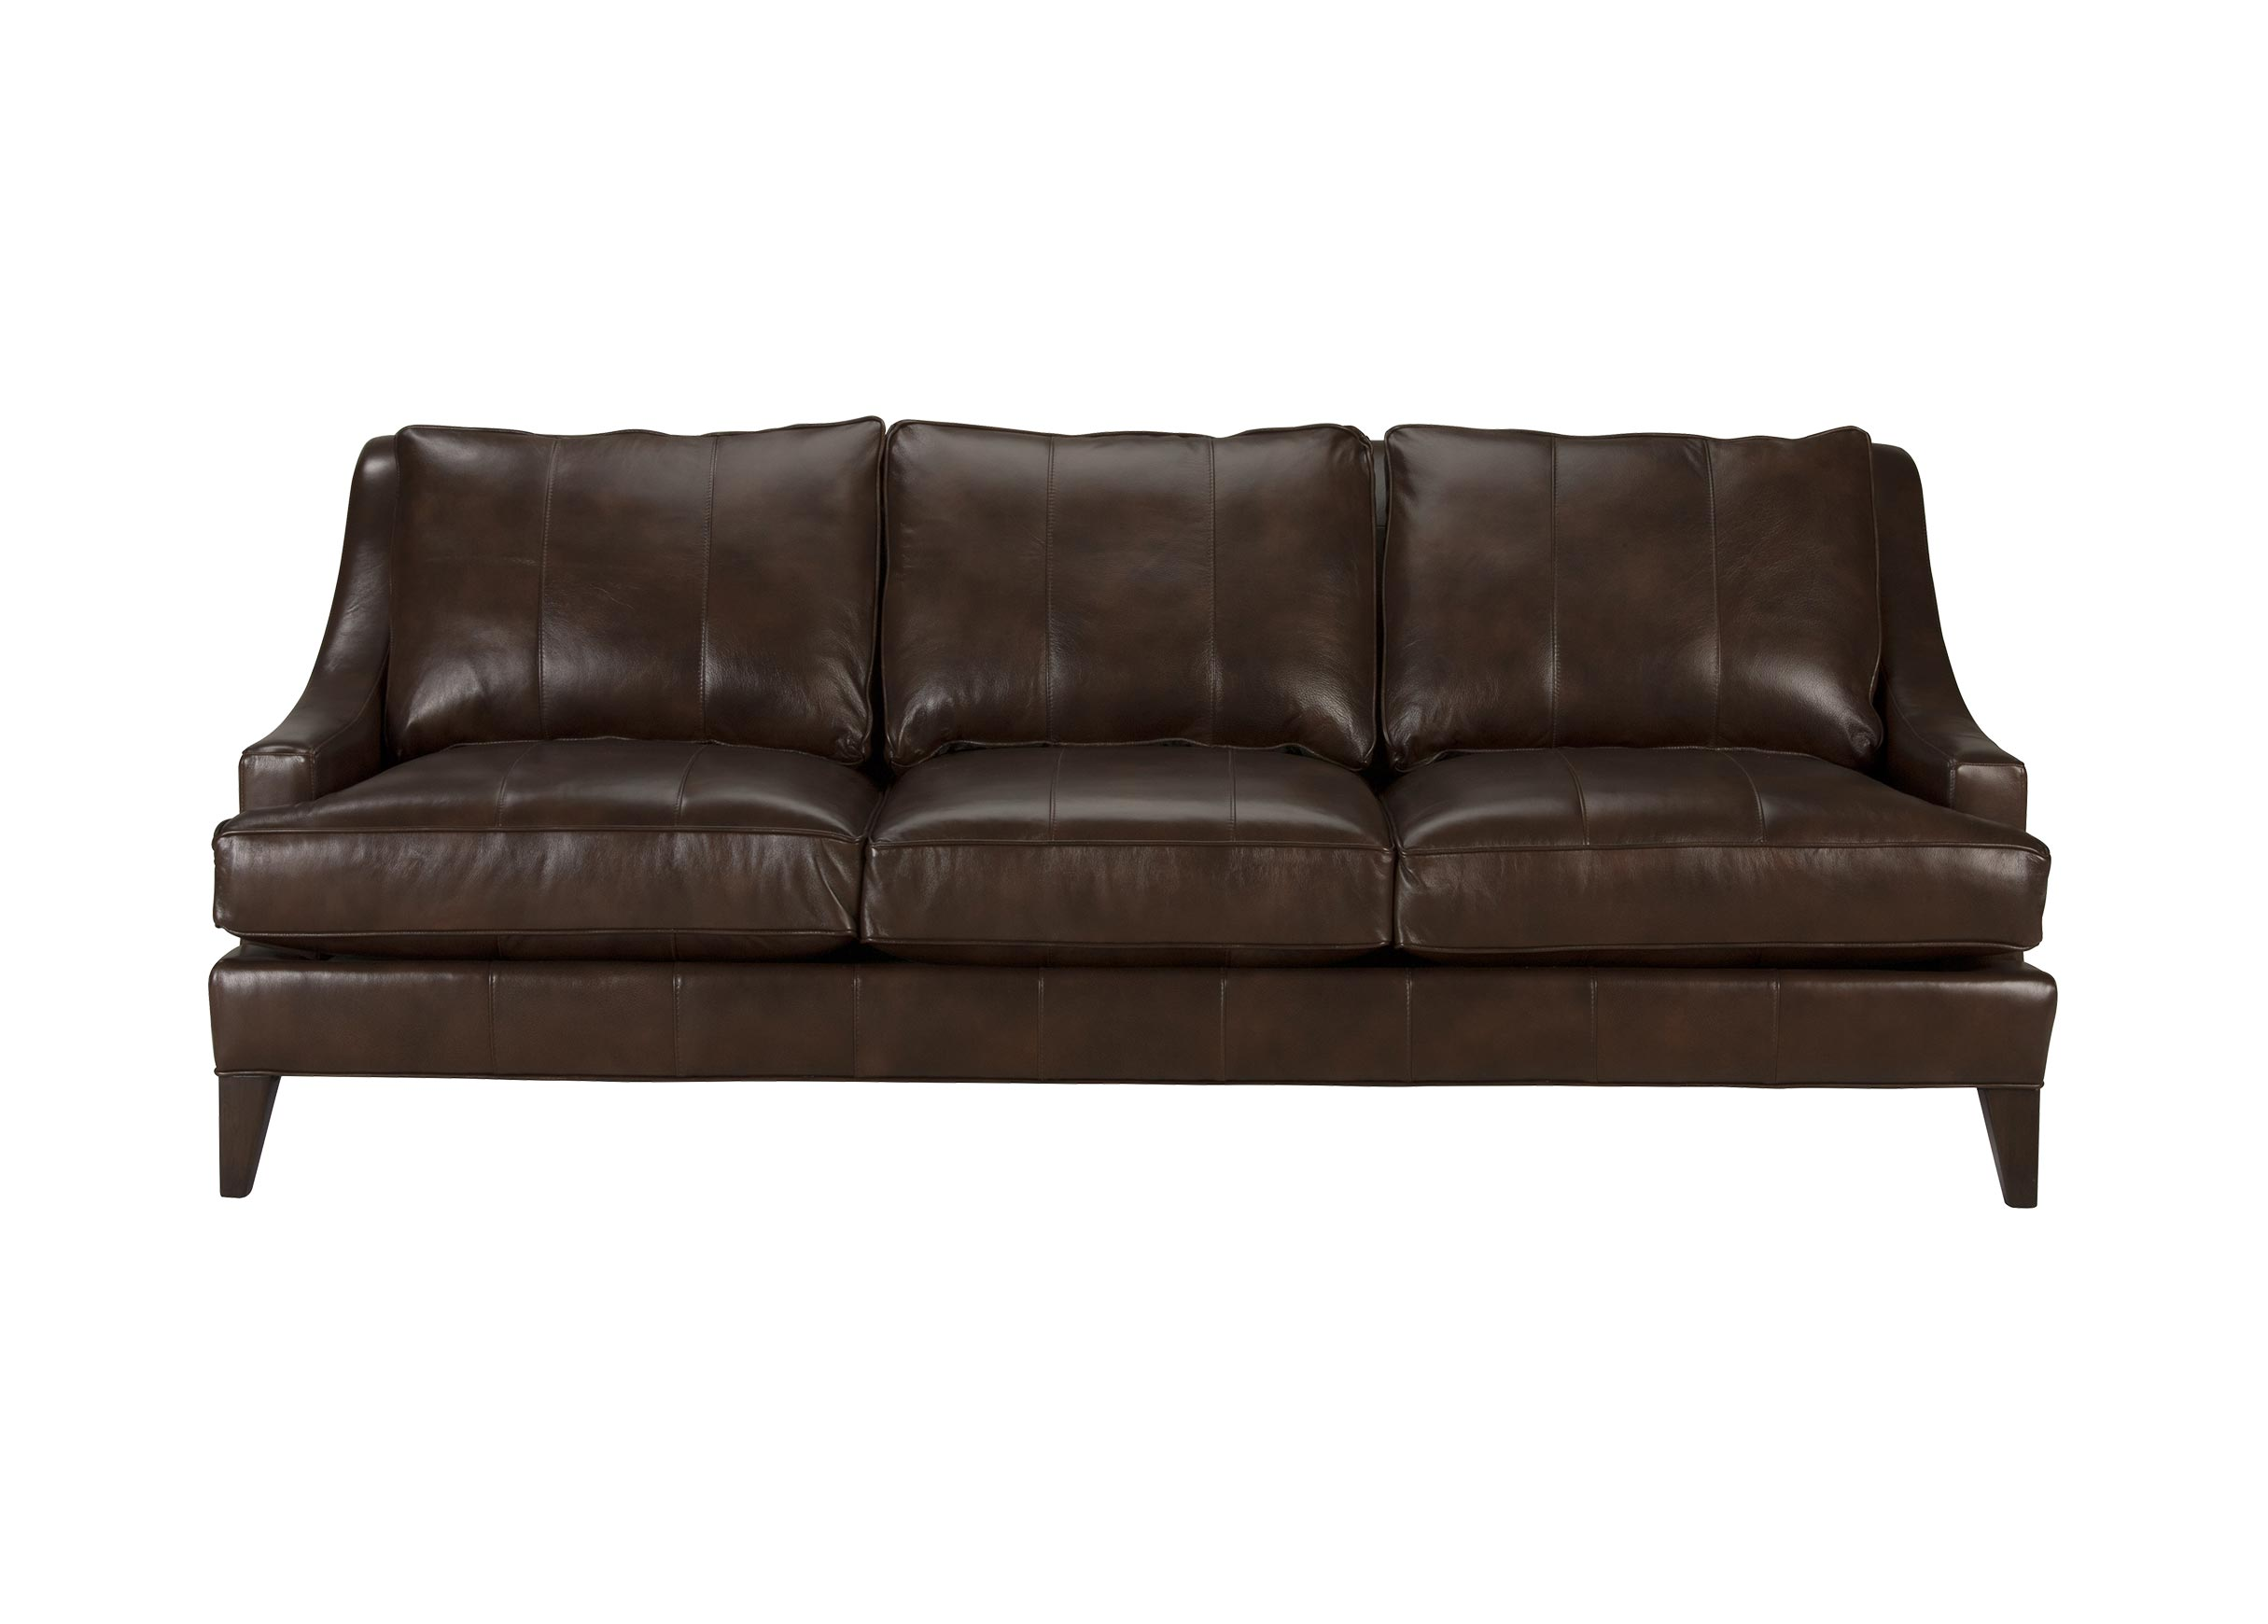 images emerson leather sofa   largegray. emerson leather sofa  sofas  loveseats